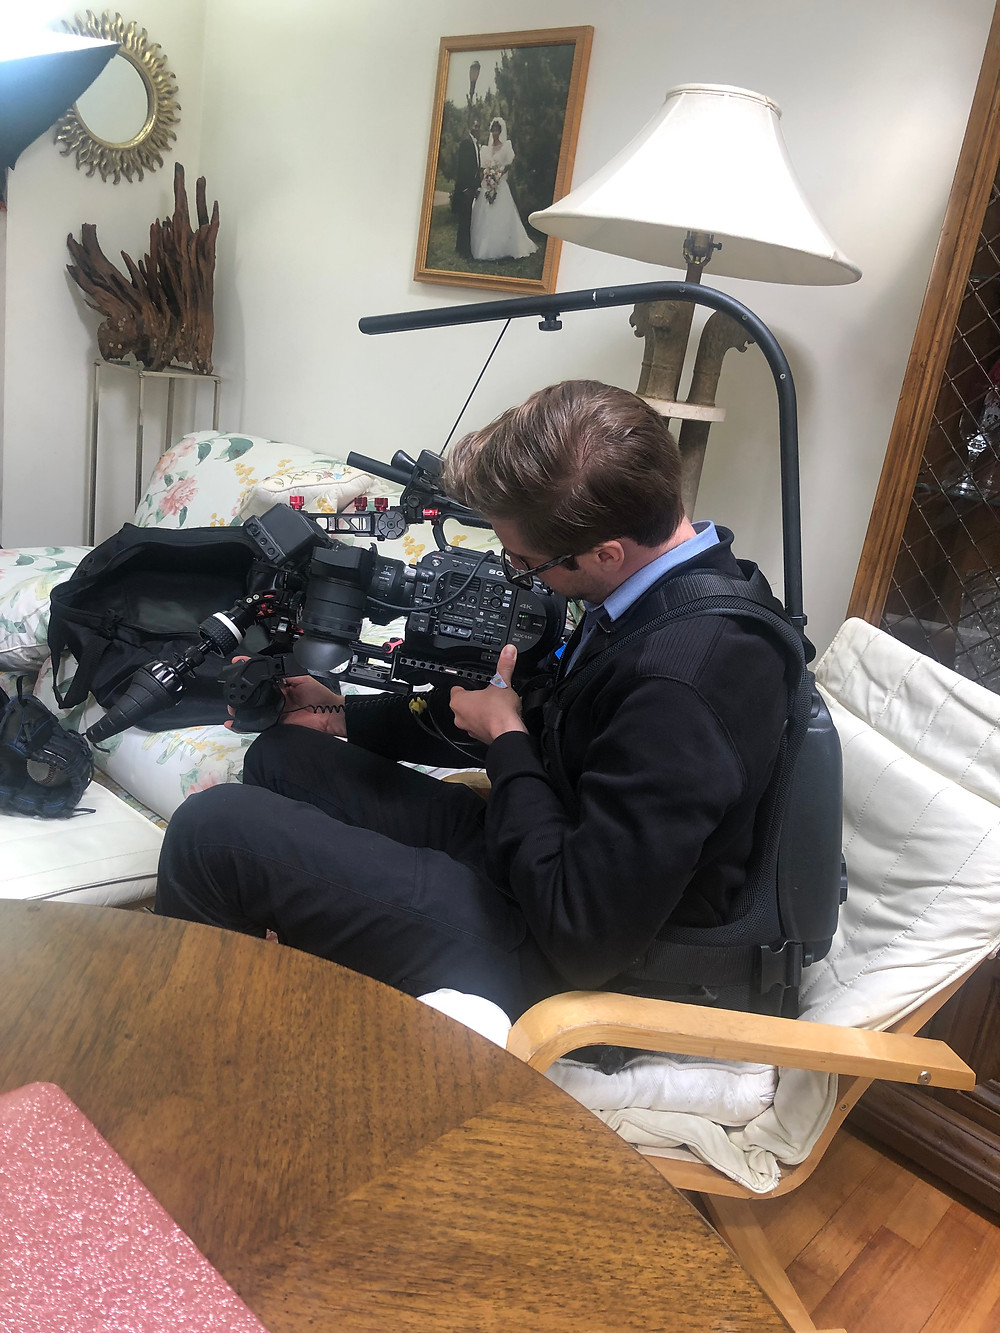 Director of Photography preparing a shot.